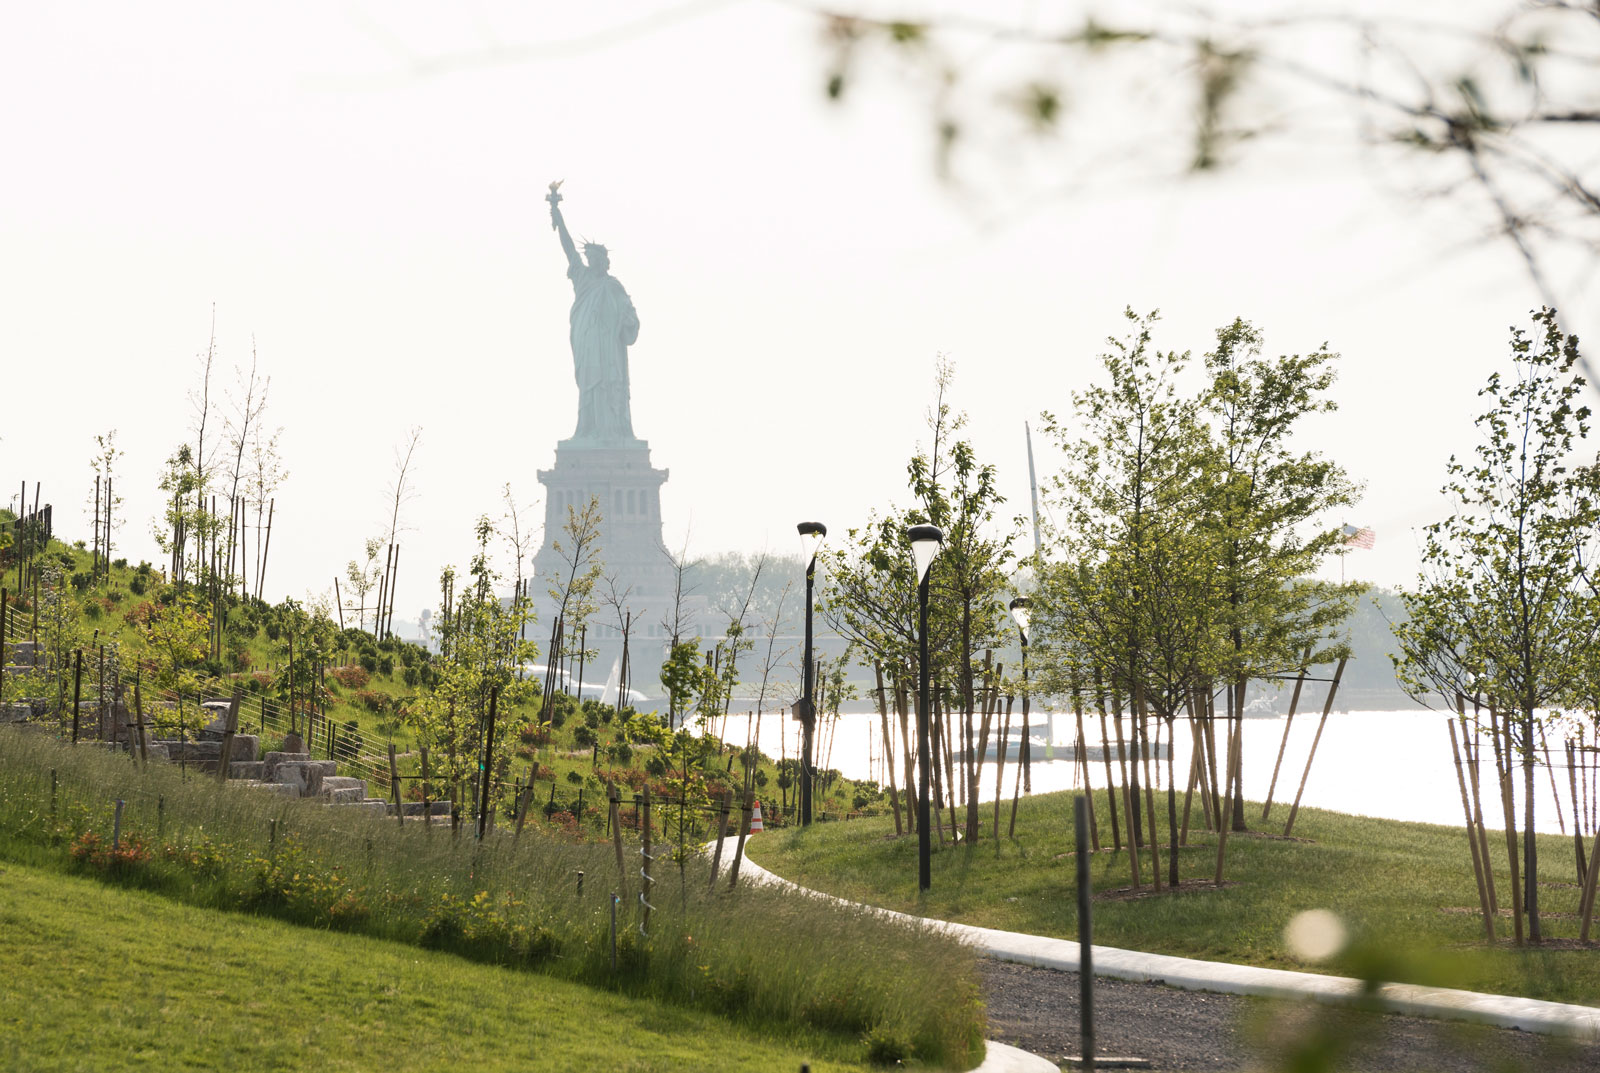 The Statue of Liberty, seen from Governors Island, New York, 2016